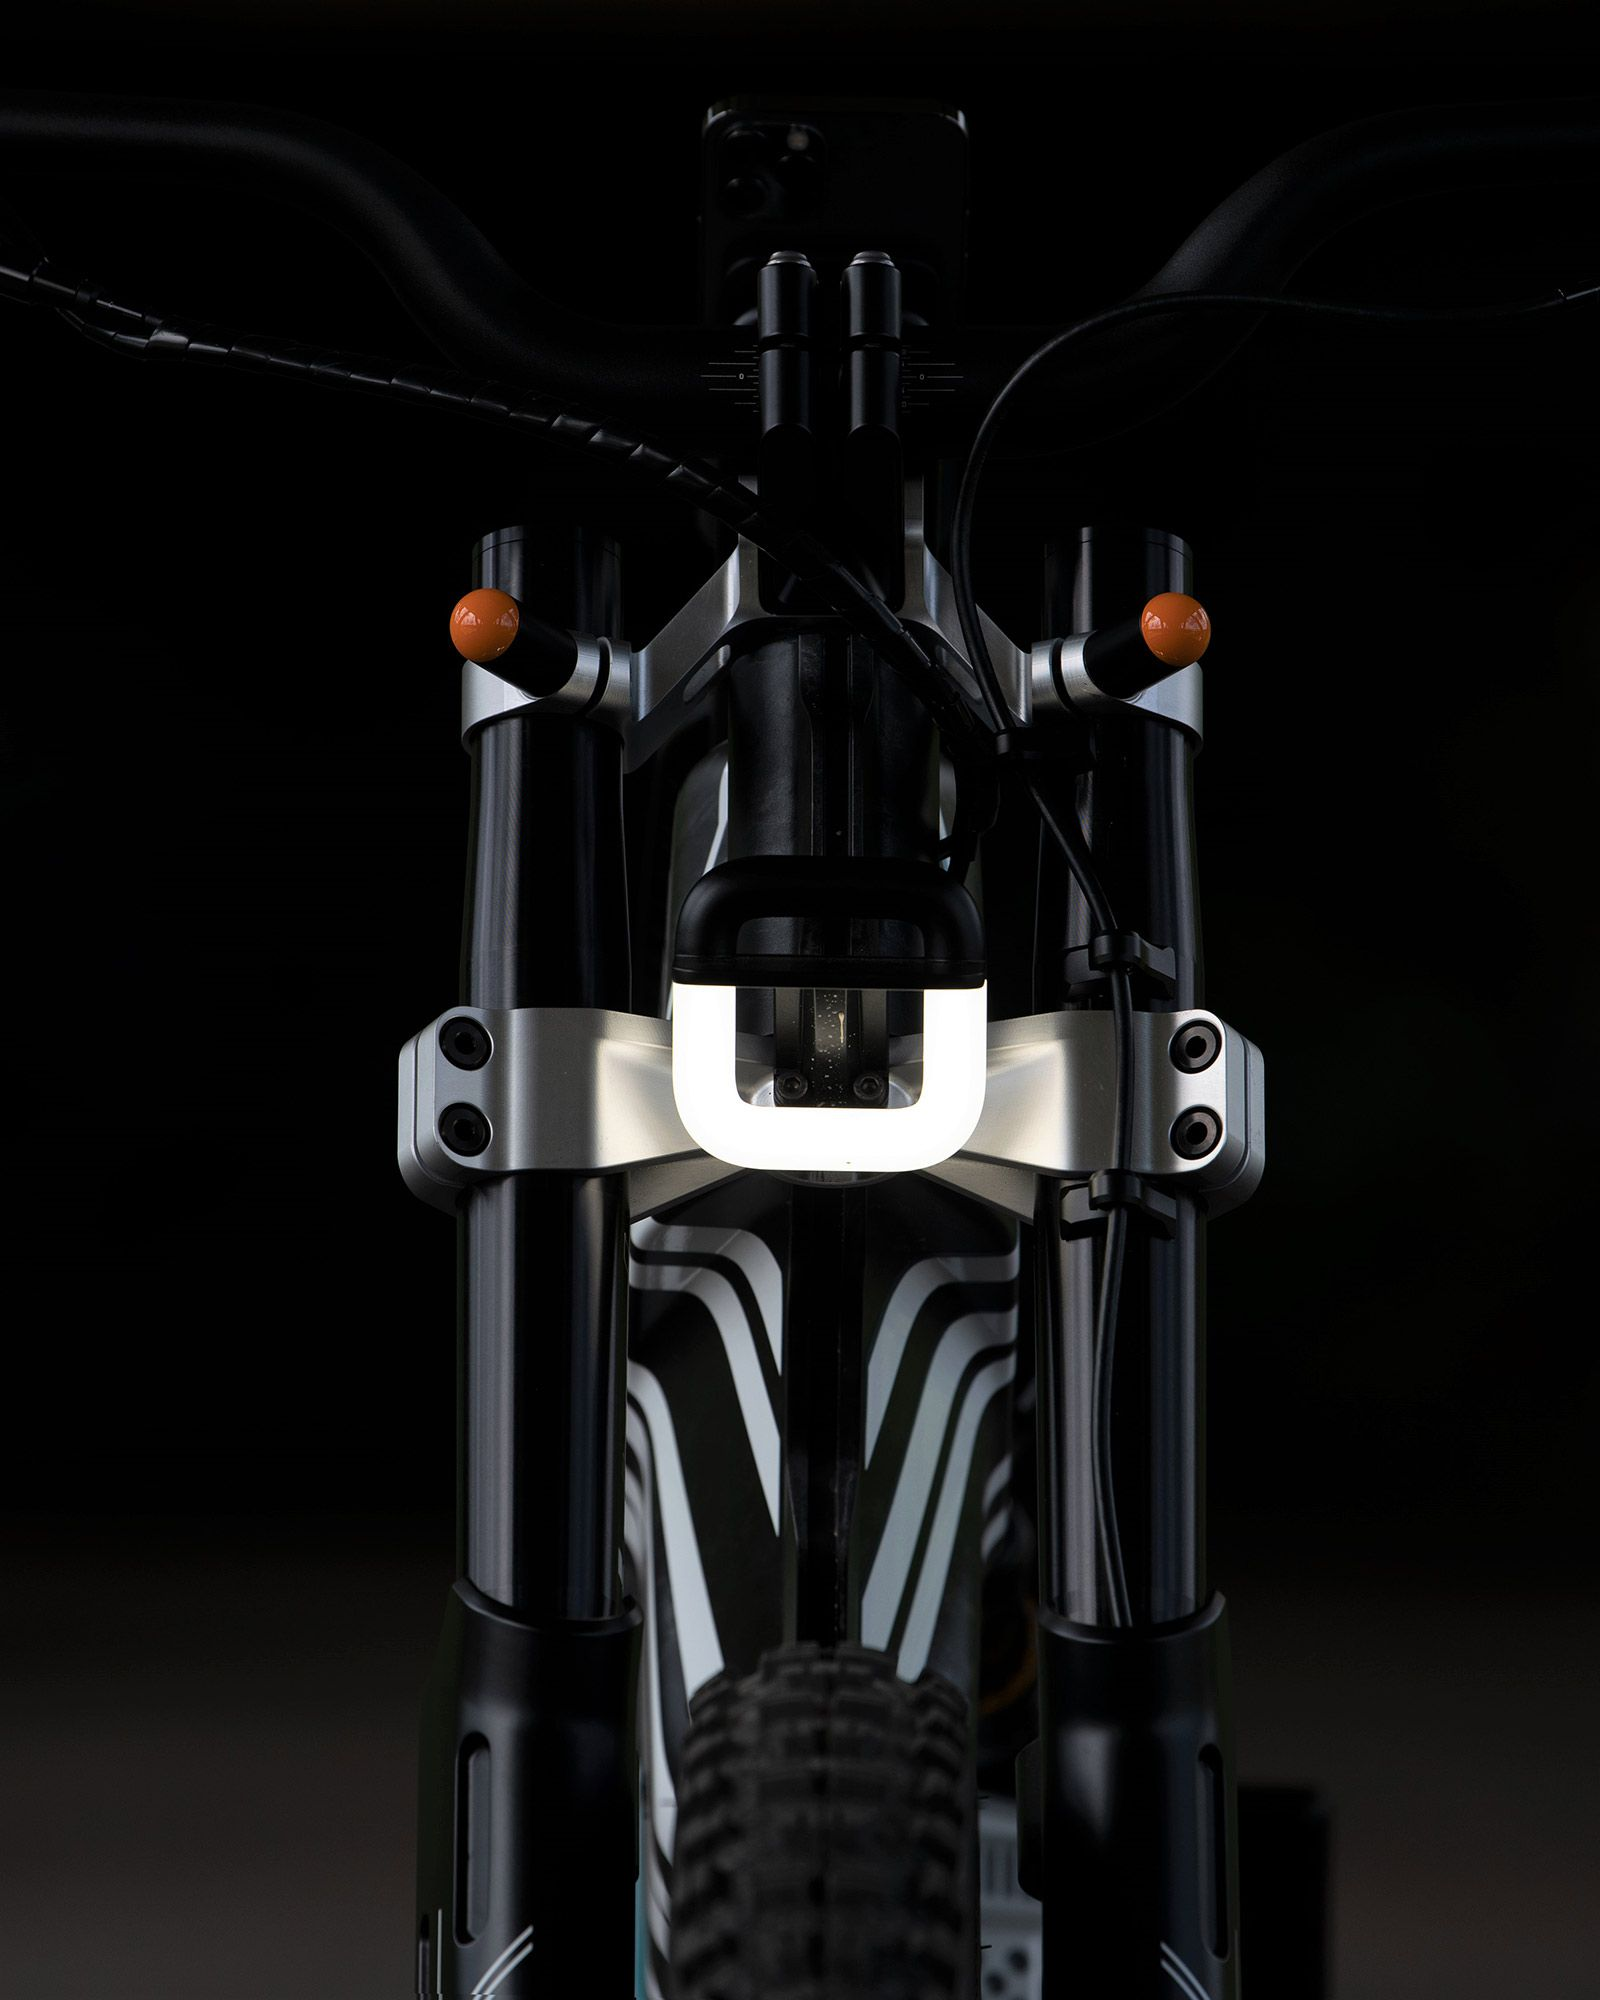 Beefy front fork holds a unique U-shaped LED lighting element as well as a 26-inch front wheel.